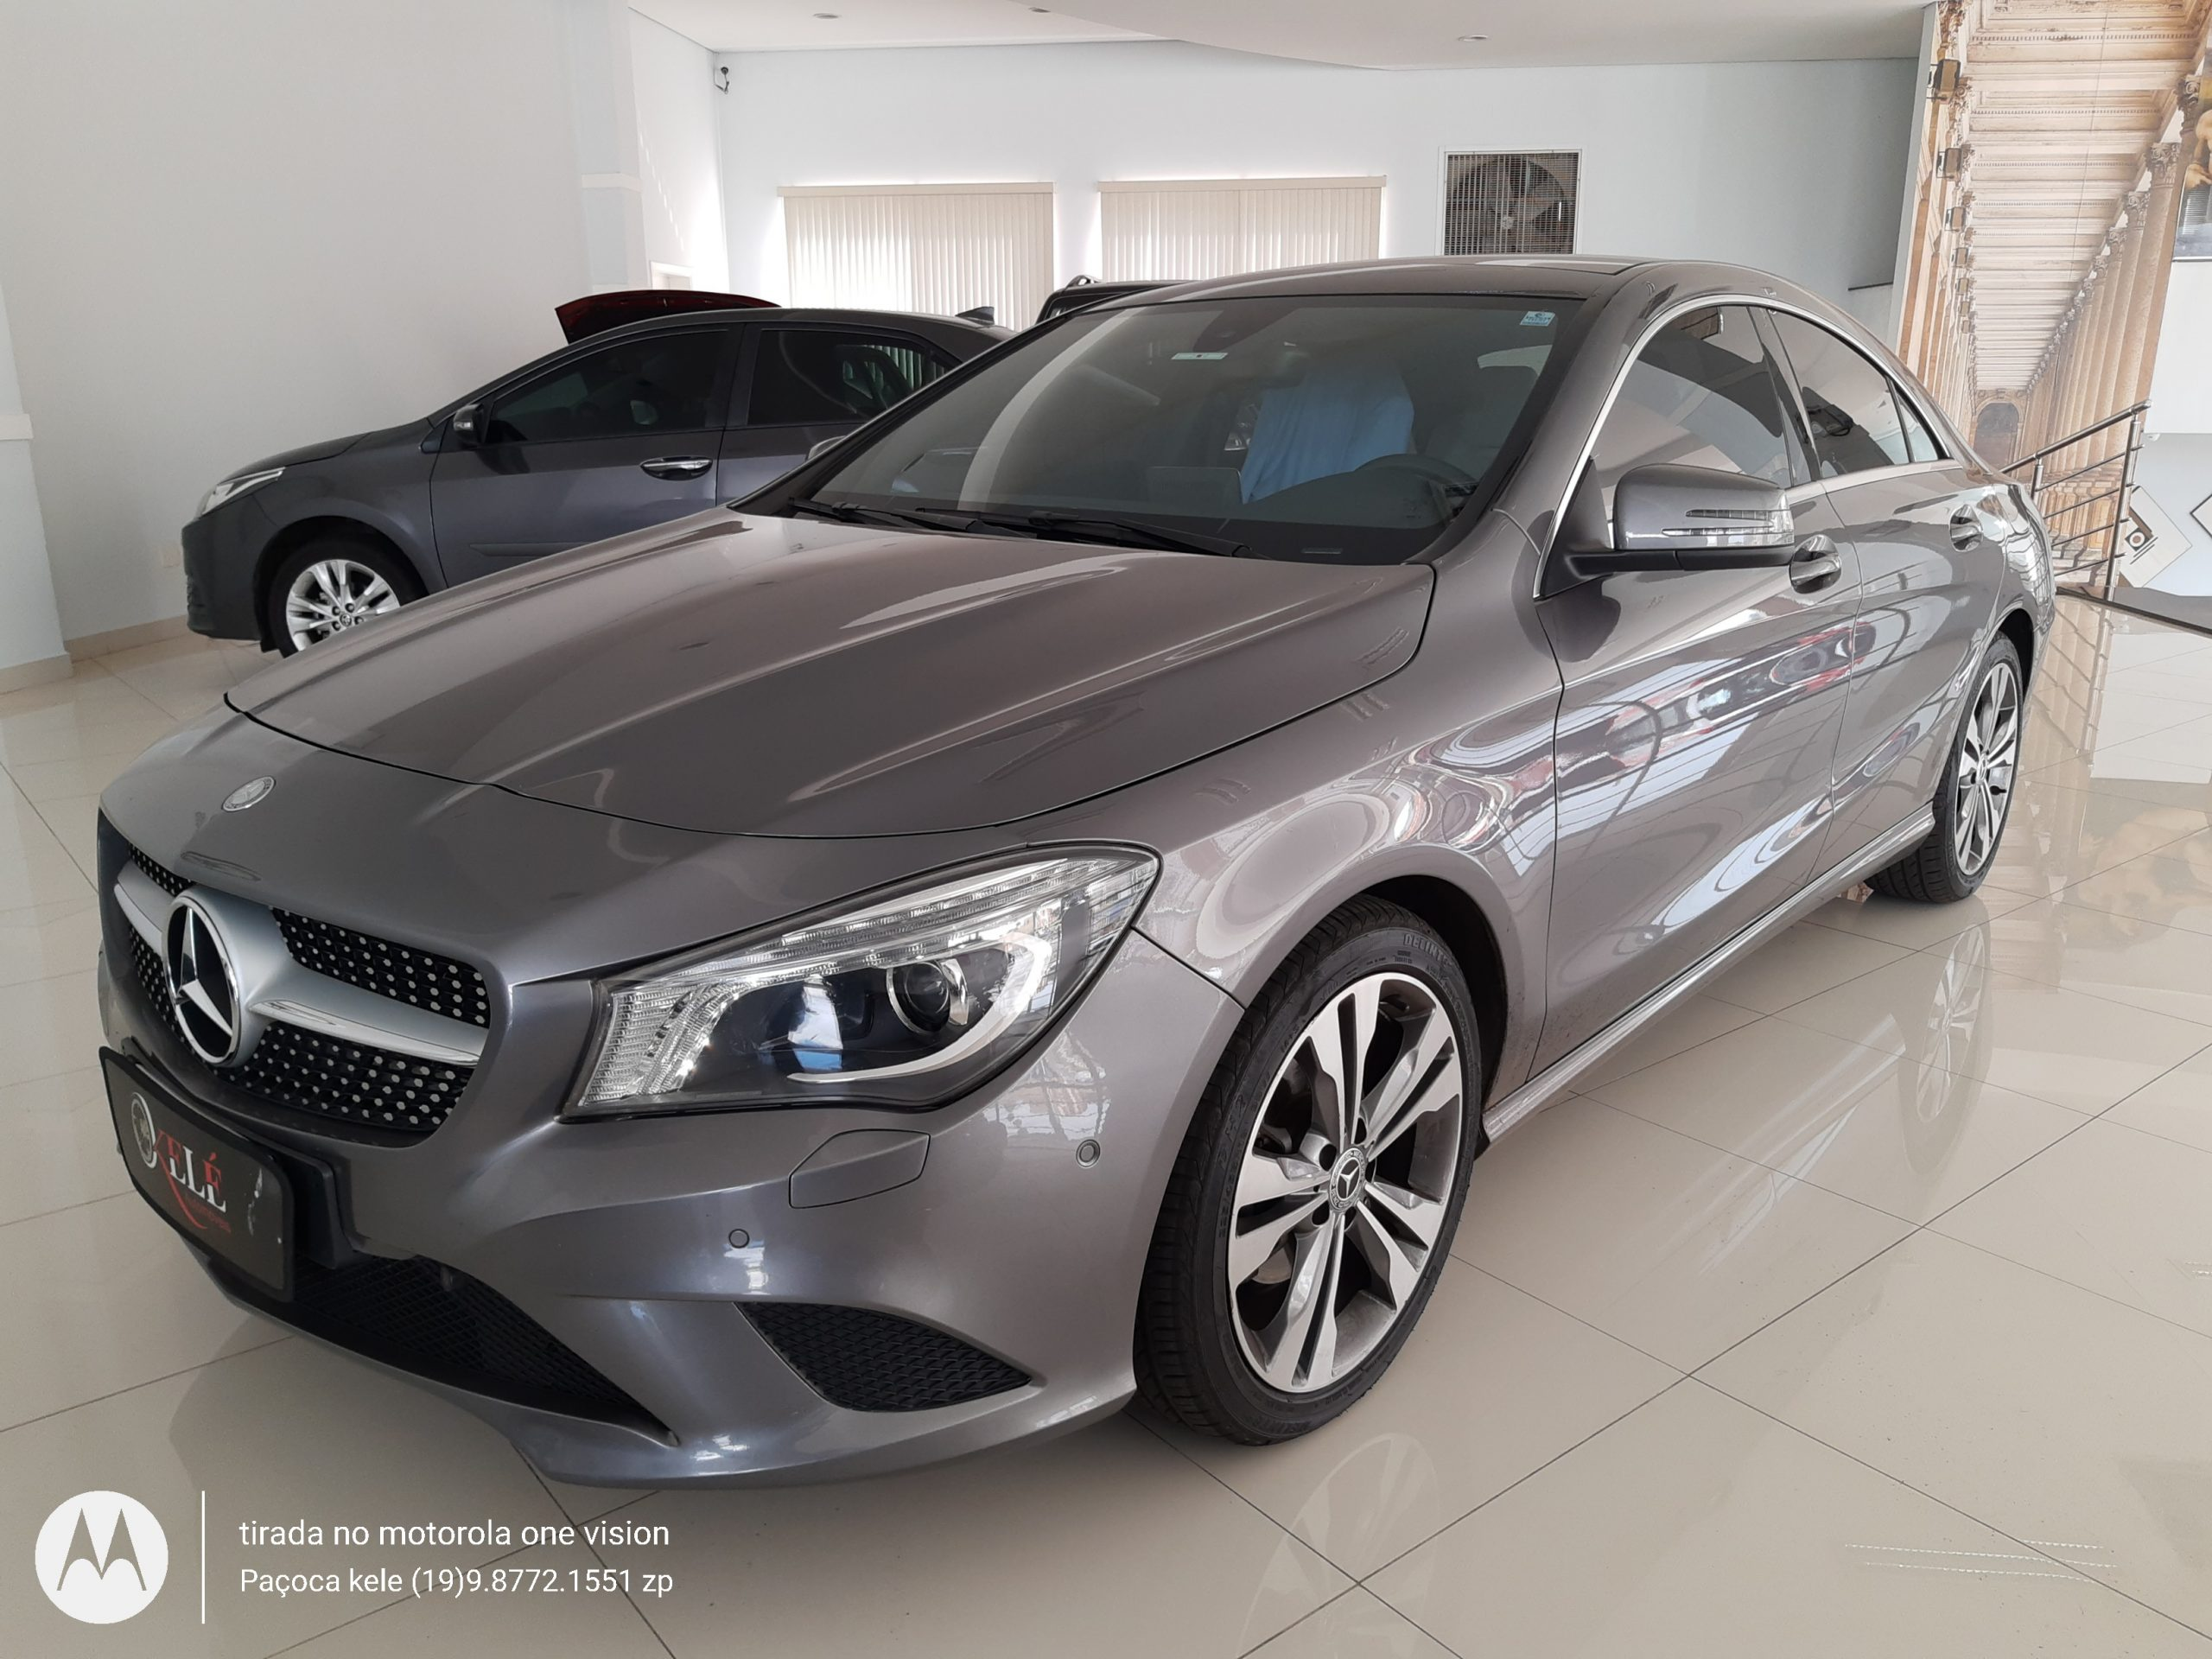 MERCEDES-BENZ CLA 200 VISION 1.6 TURBO